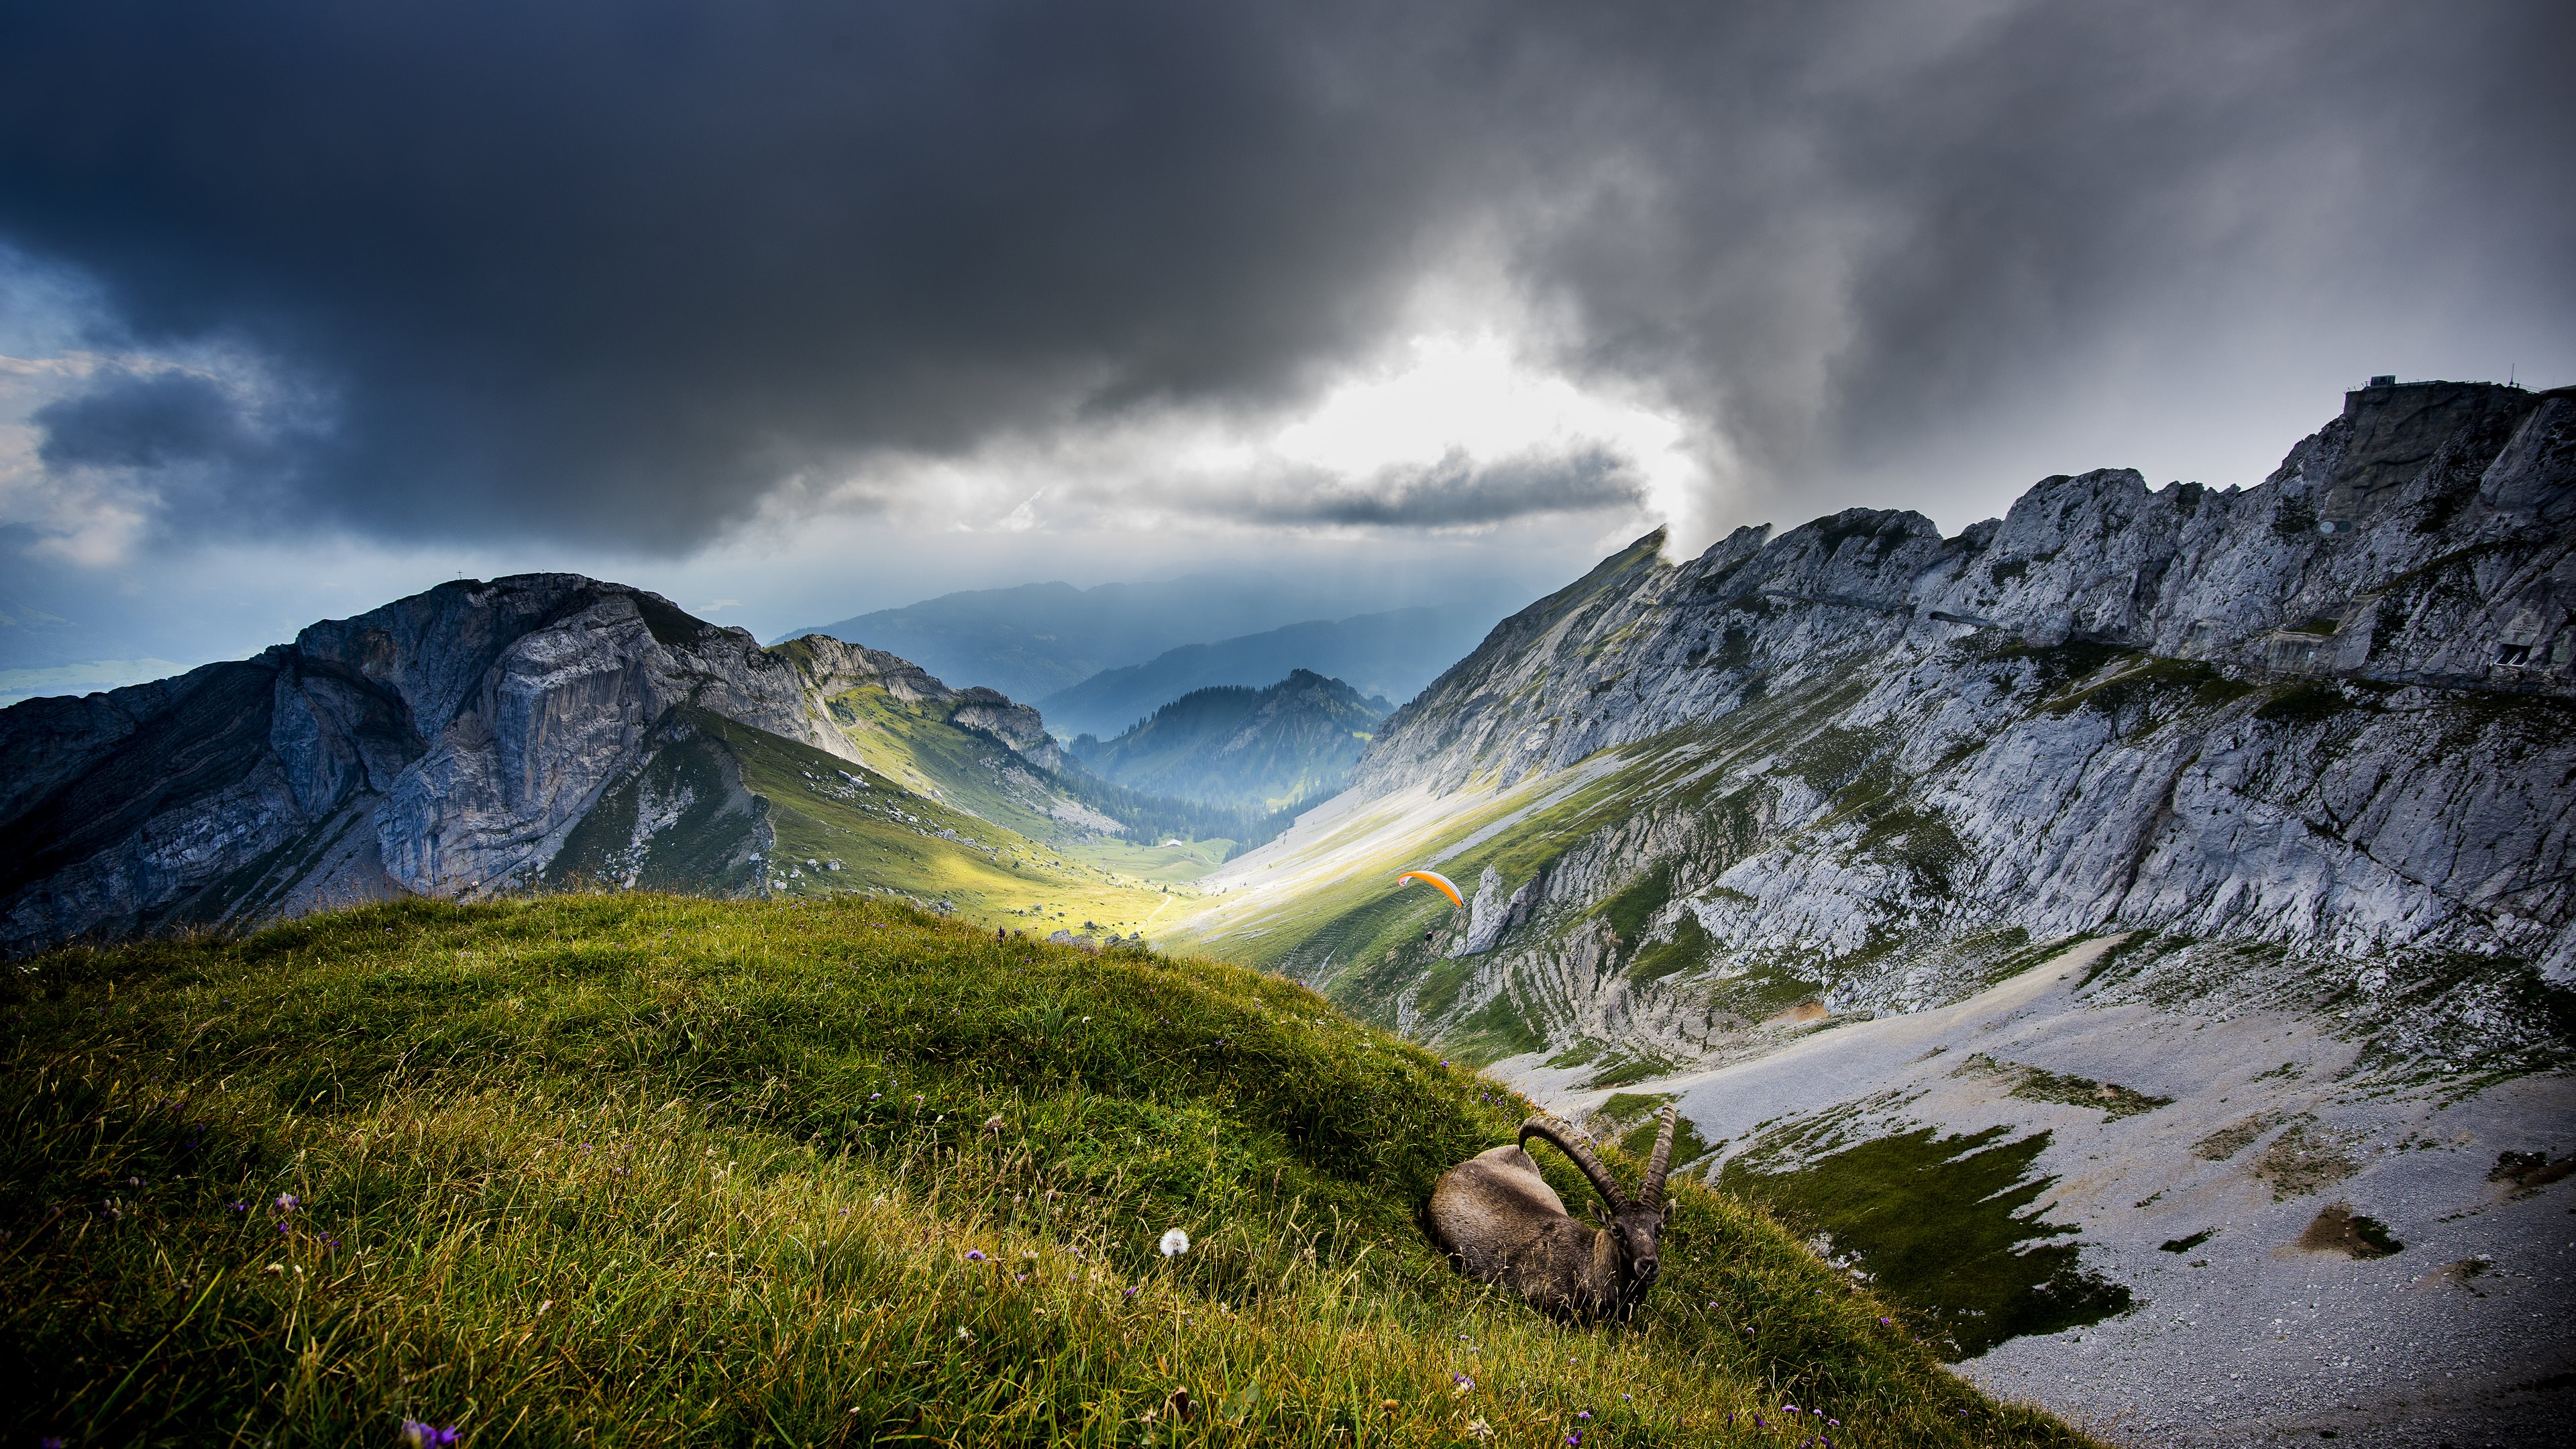 Ibex_at_Mount_Pilatus-ultra-HD